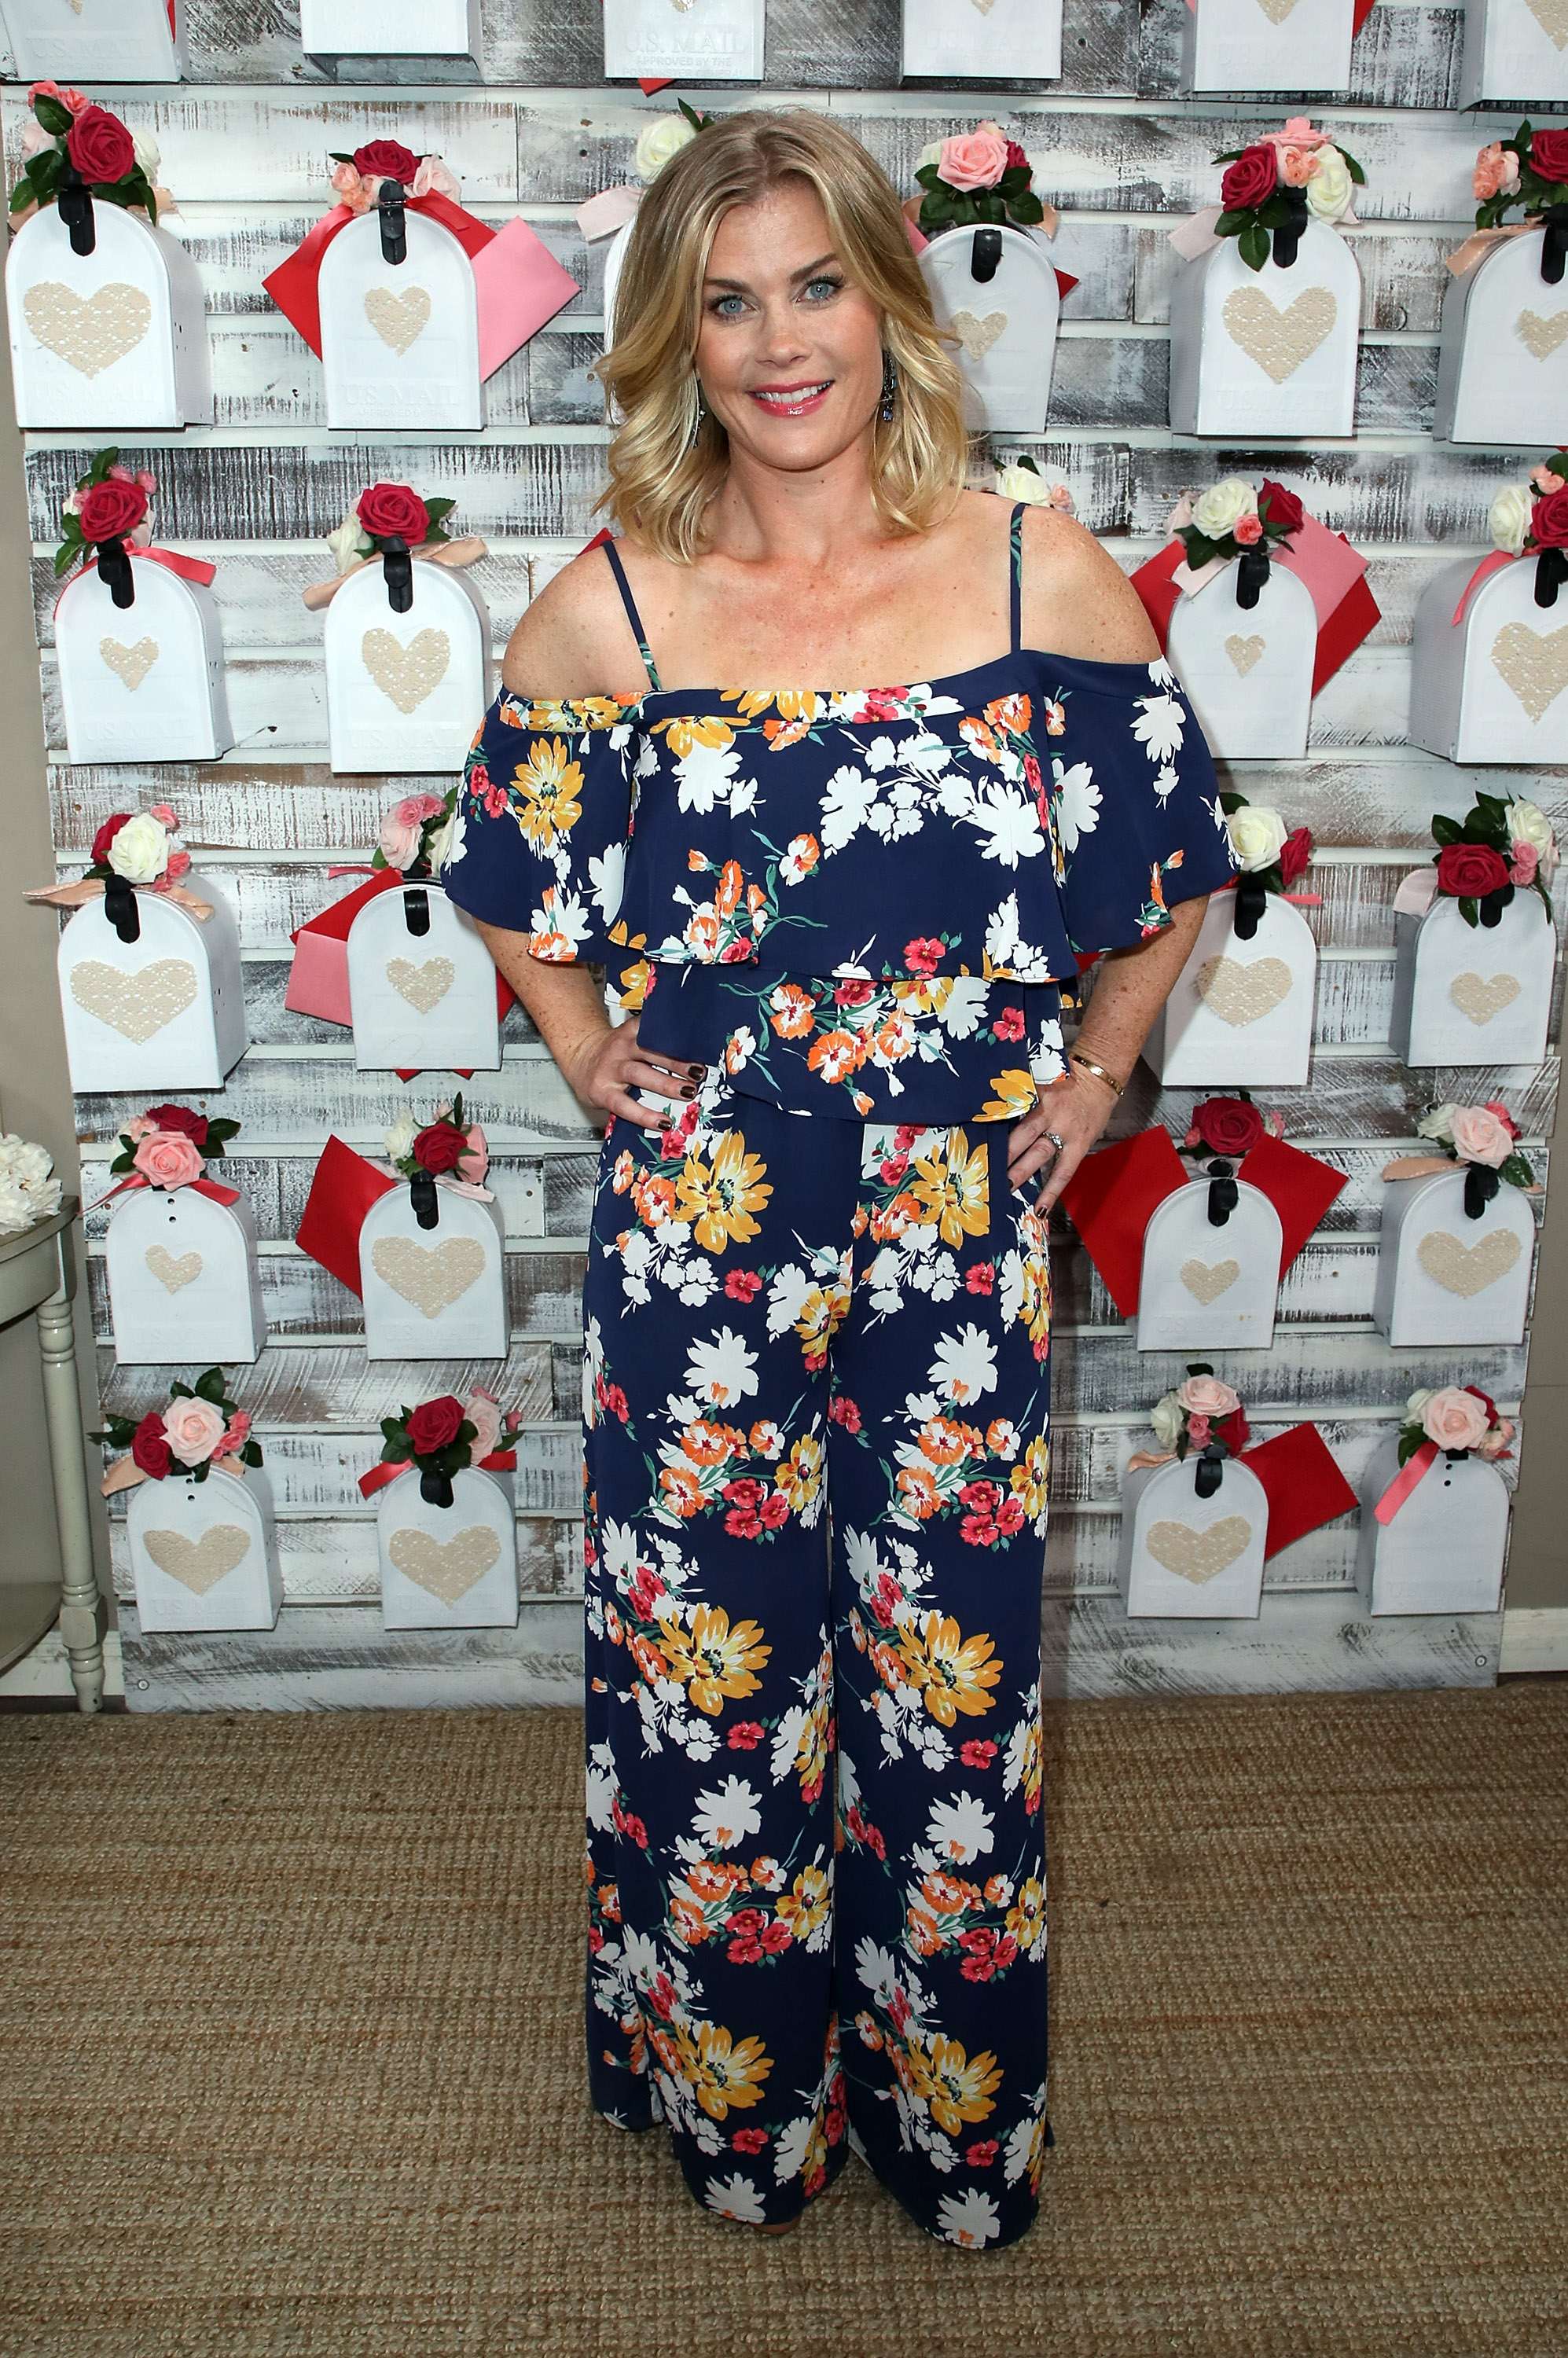 Alison Sweeney Family Pictures alison sweeney's complete style transformation - aol lifestyle